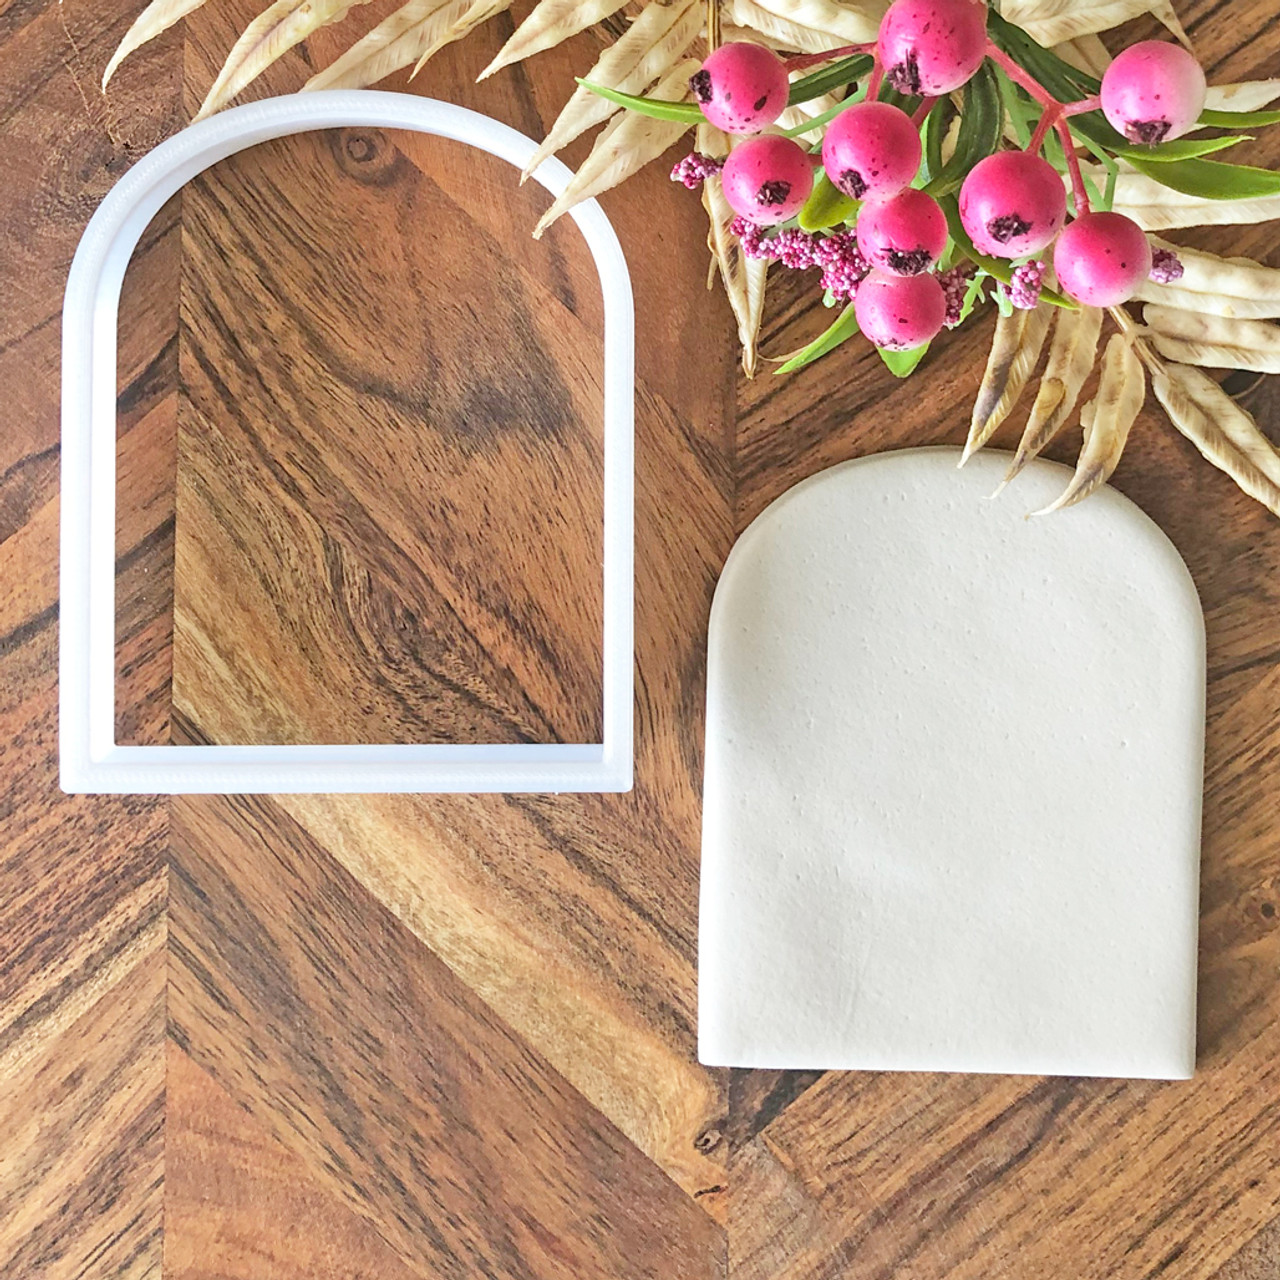 Arch Shaped Cookie Cutter